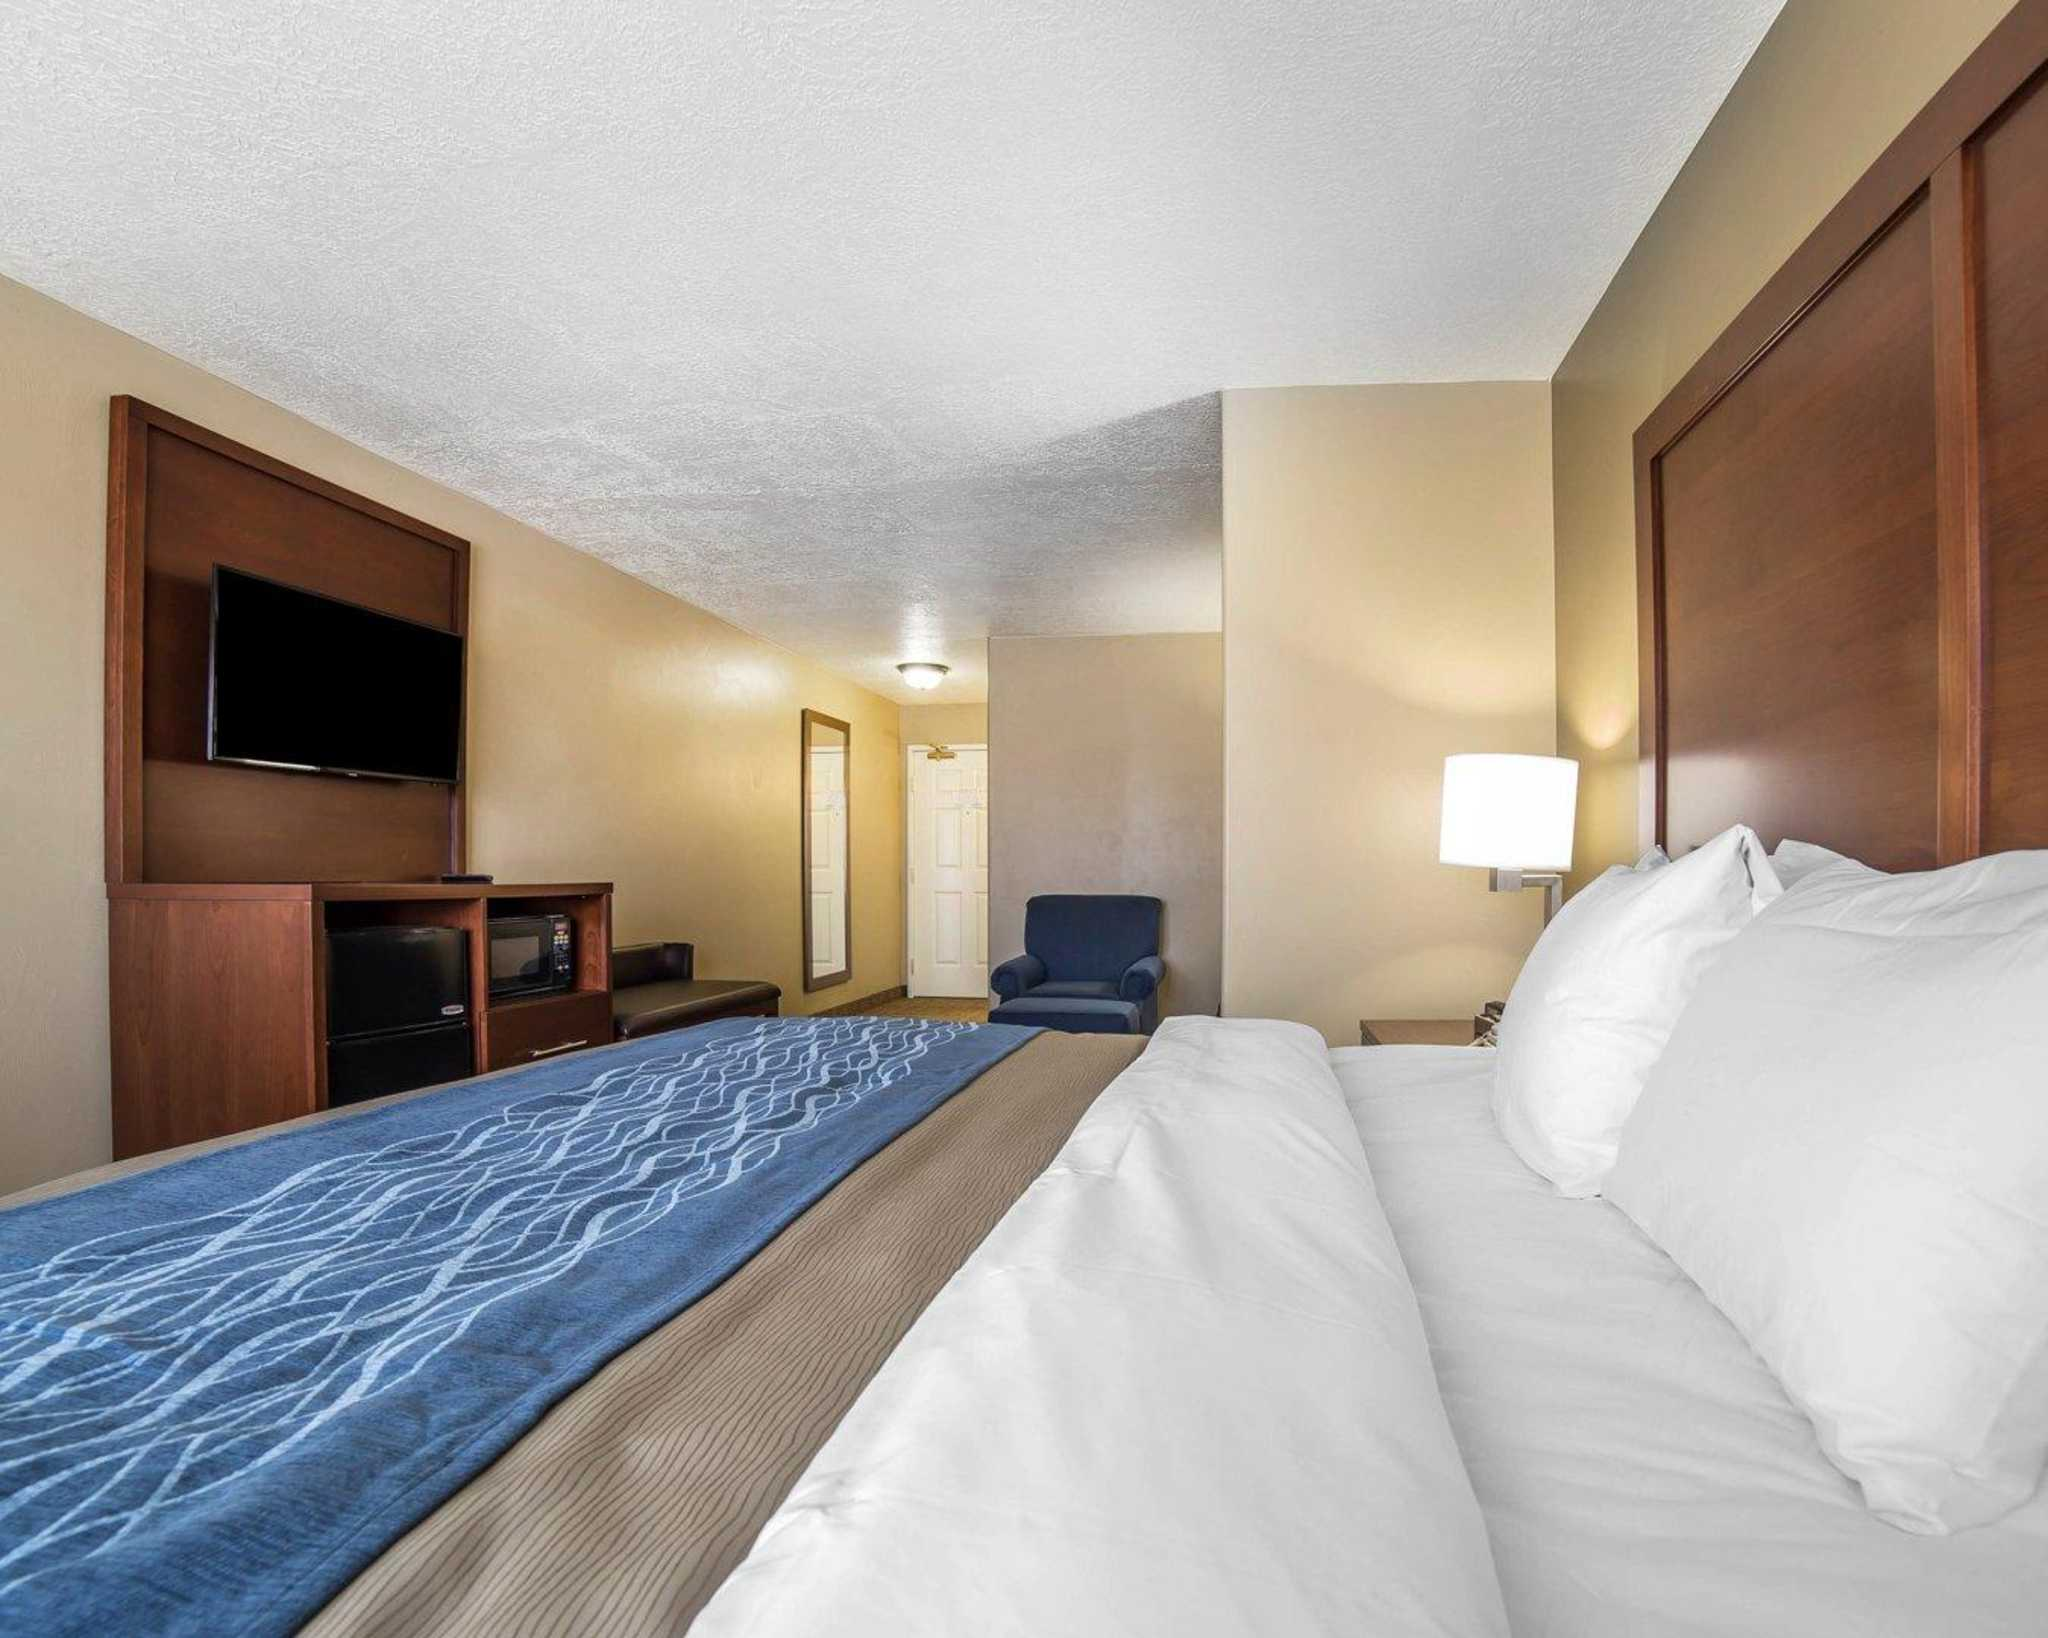 comfort inn saint george north at 974 north 2720 east saint george ut on fave. Black Bedroom Furniture Sets. Home Design Ideas